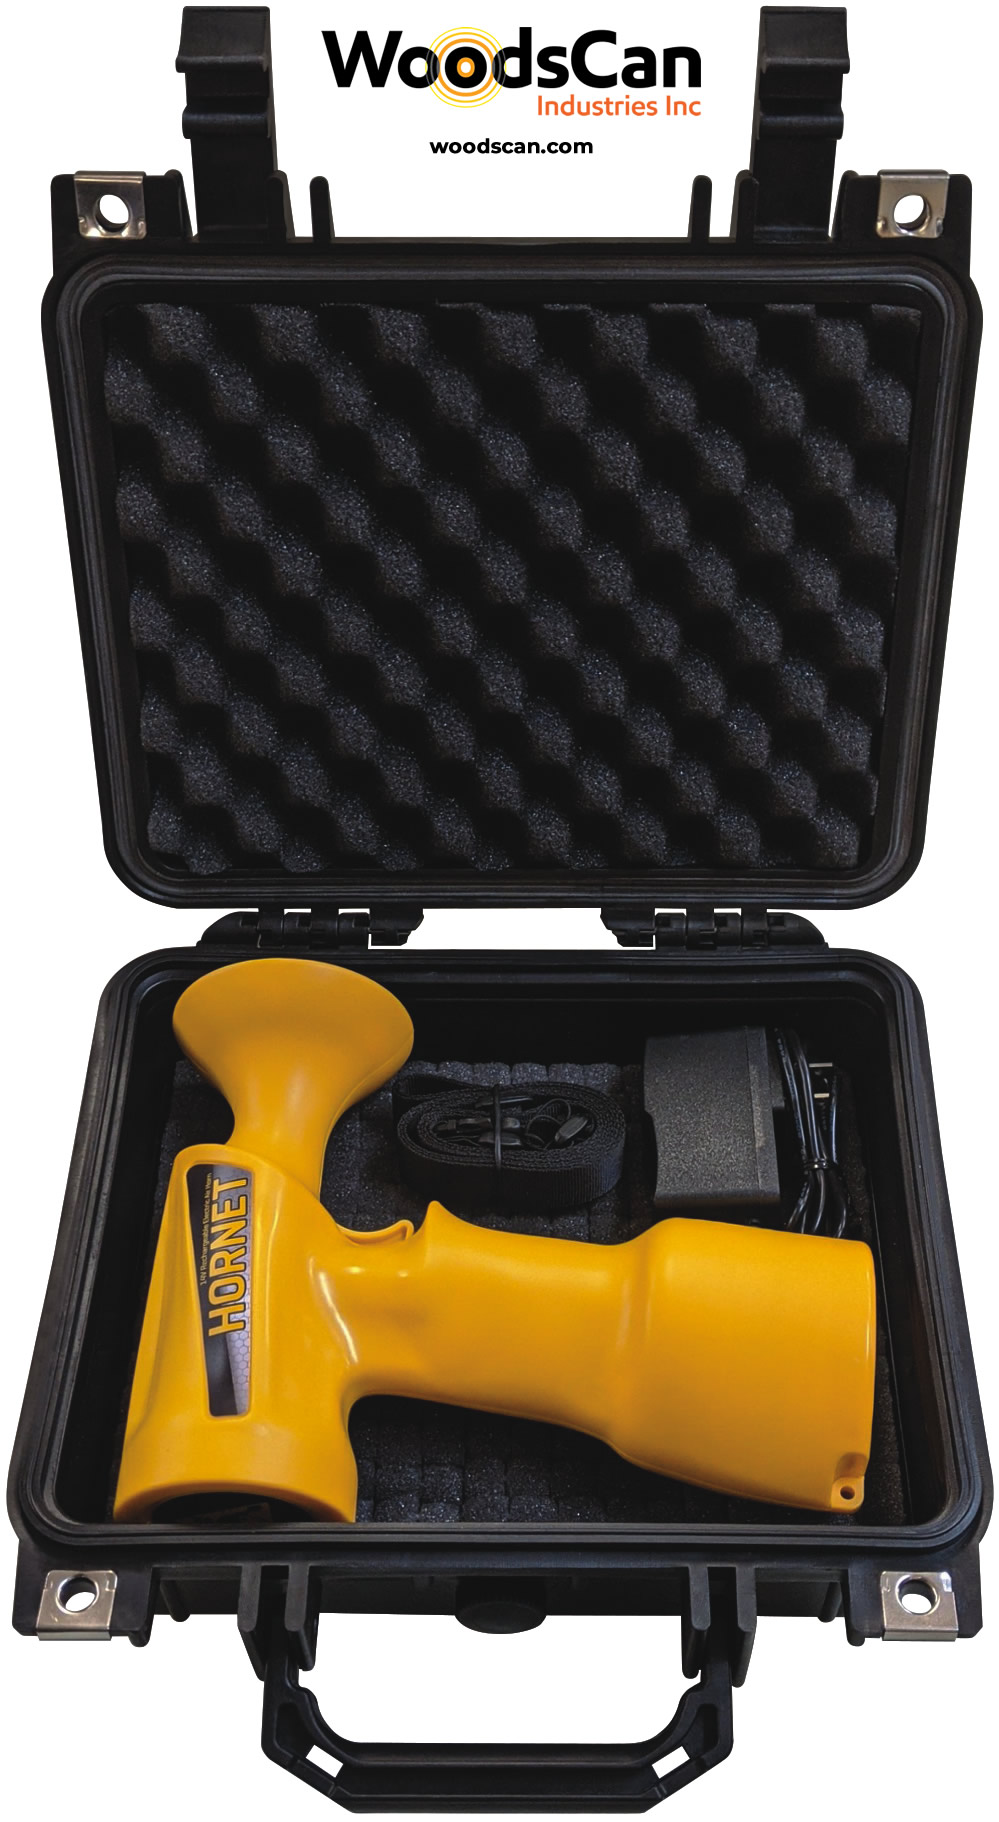 WoodsCan Hornet Rechargeable Electric Air Horn - the world's most advanced signaling device for industrial and recreational safety.